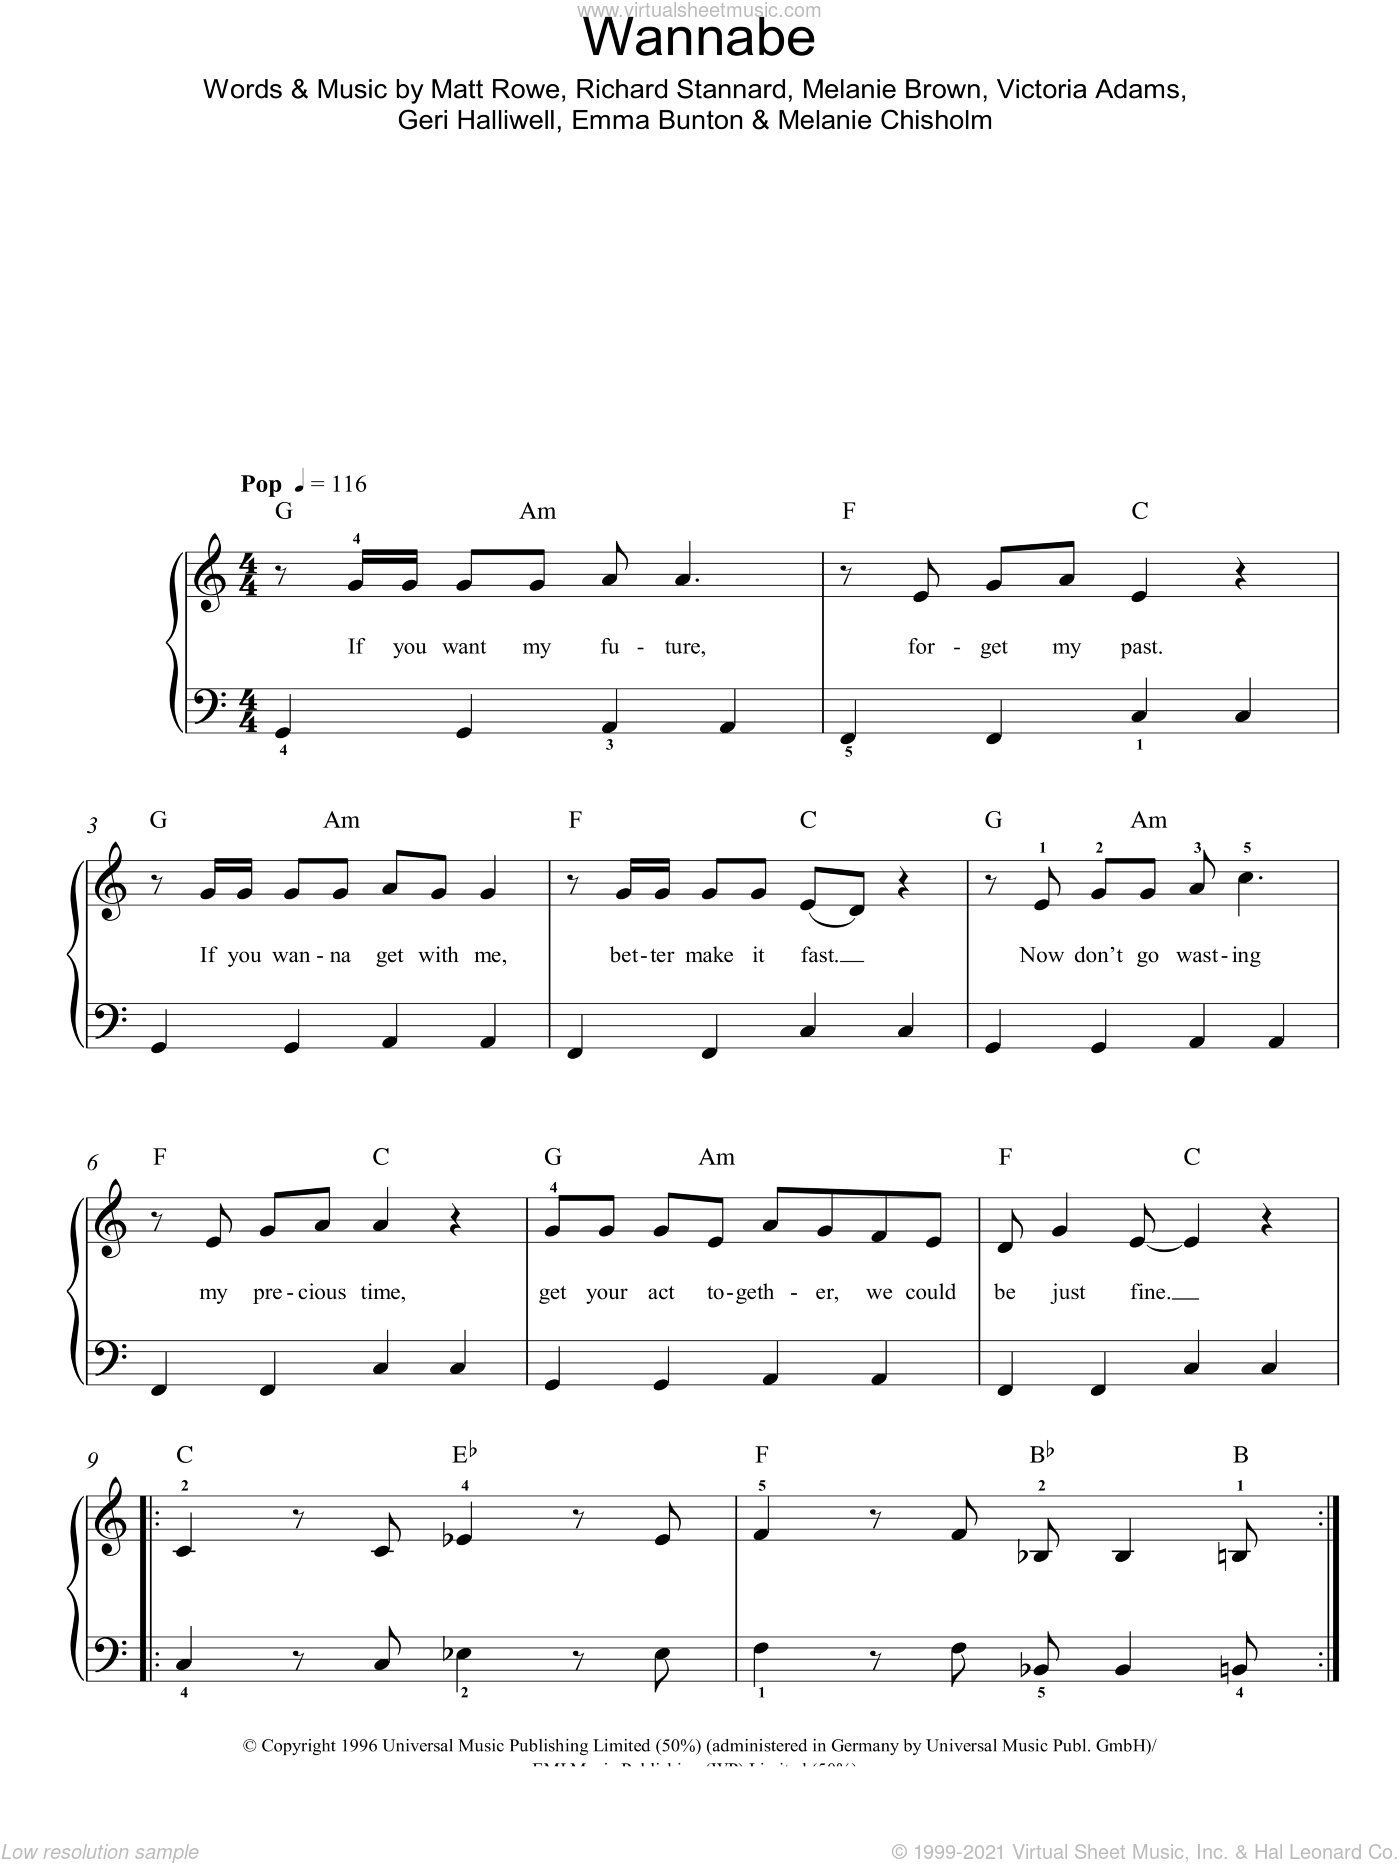 Wannabe sheet music for piano solo by The Spice Girls, Emma Bunton, Geri Halliwell, Melanie Chisholm and Richard Stannard, easy. Score Image Preview.